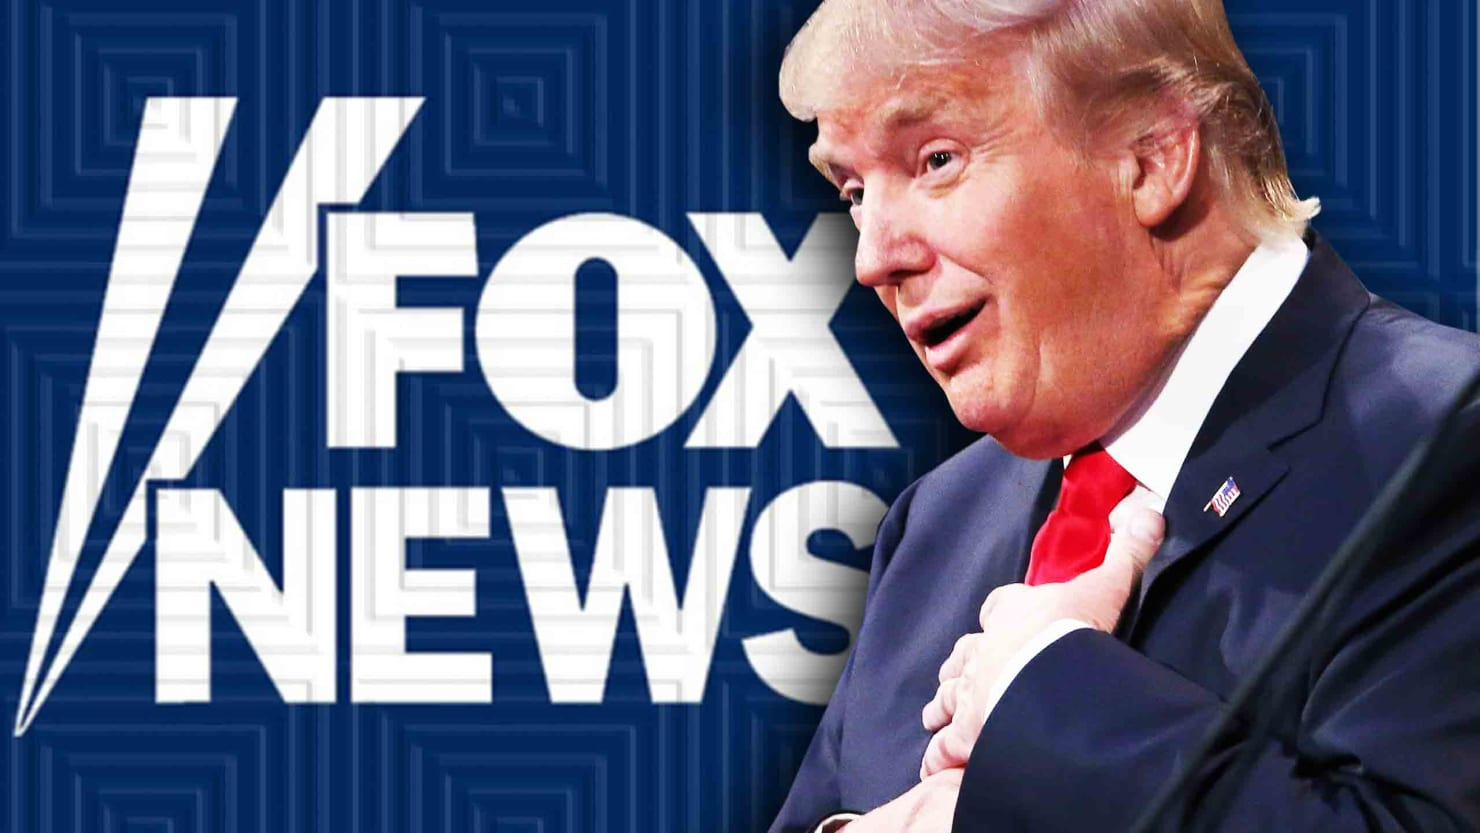 Image result for image, photo, picture, trump on fox news